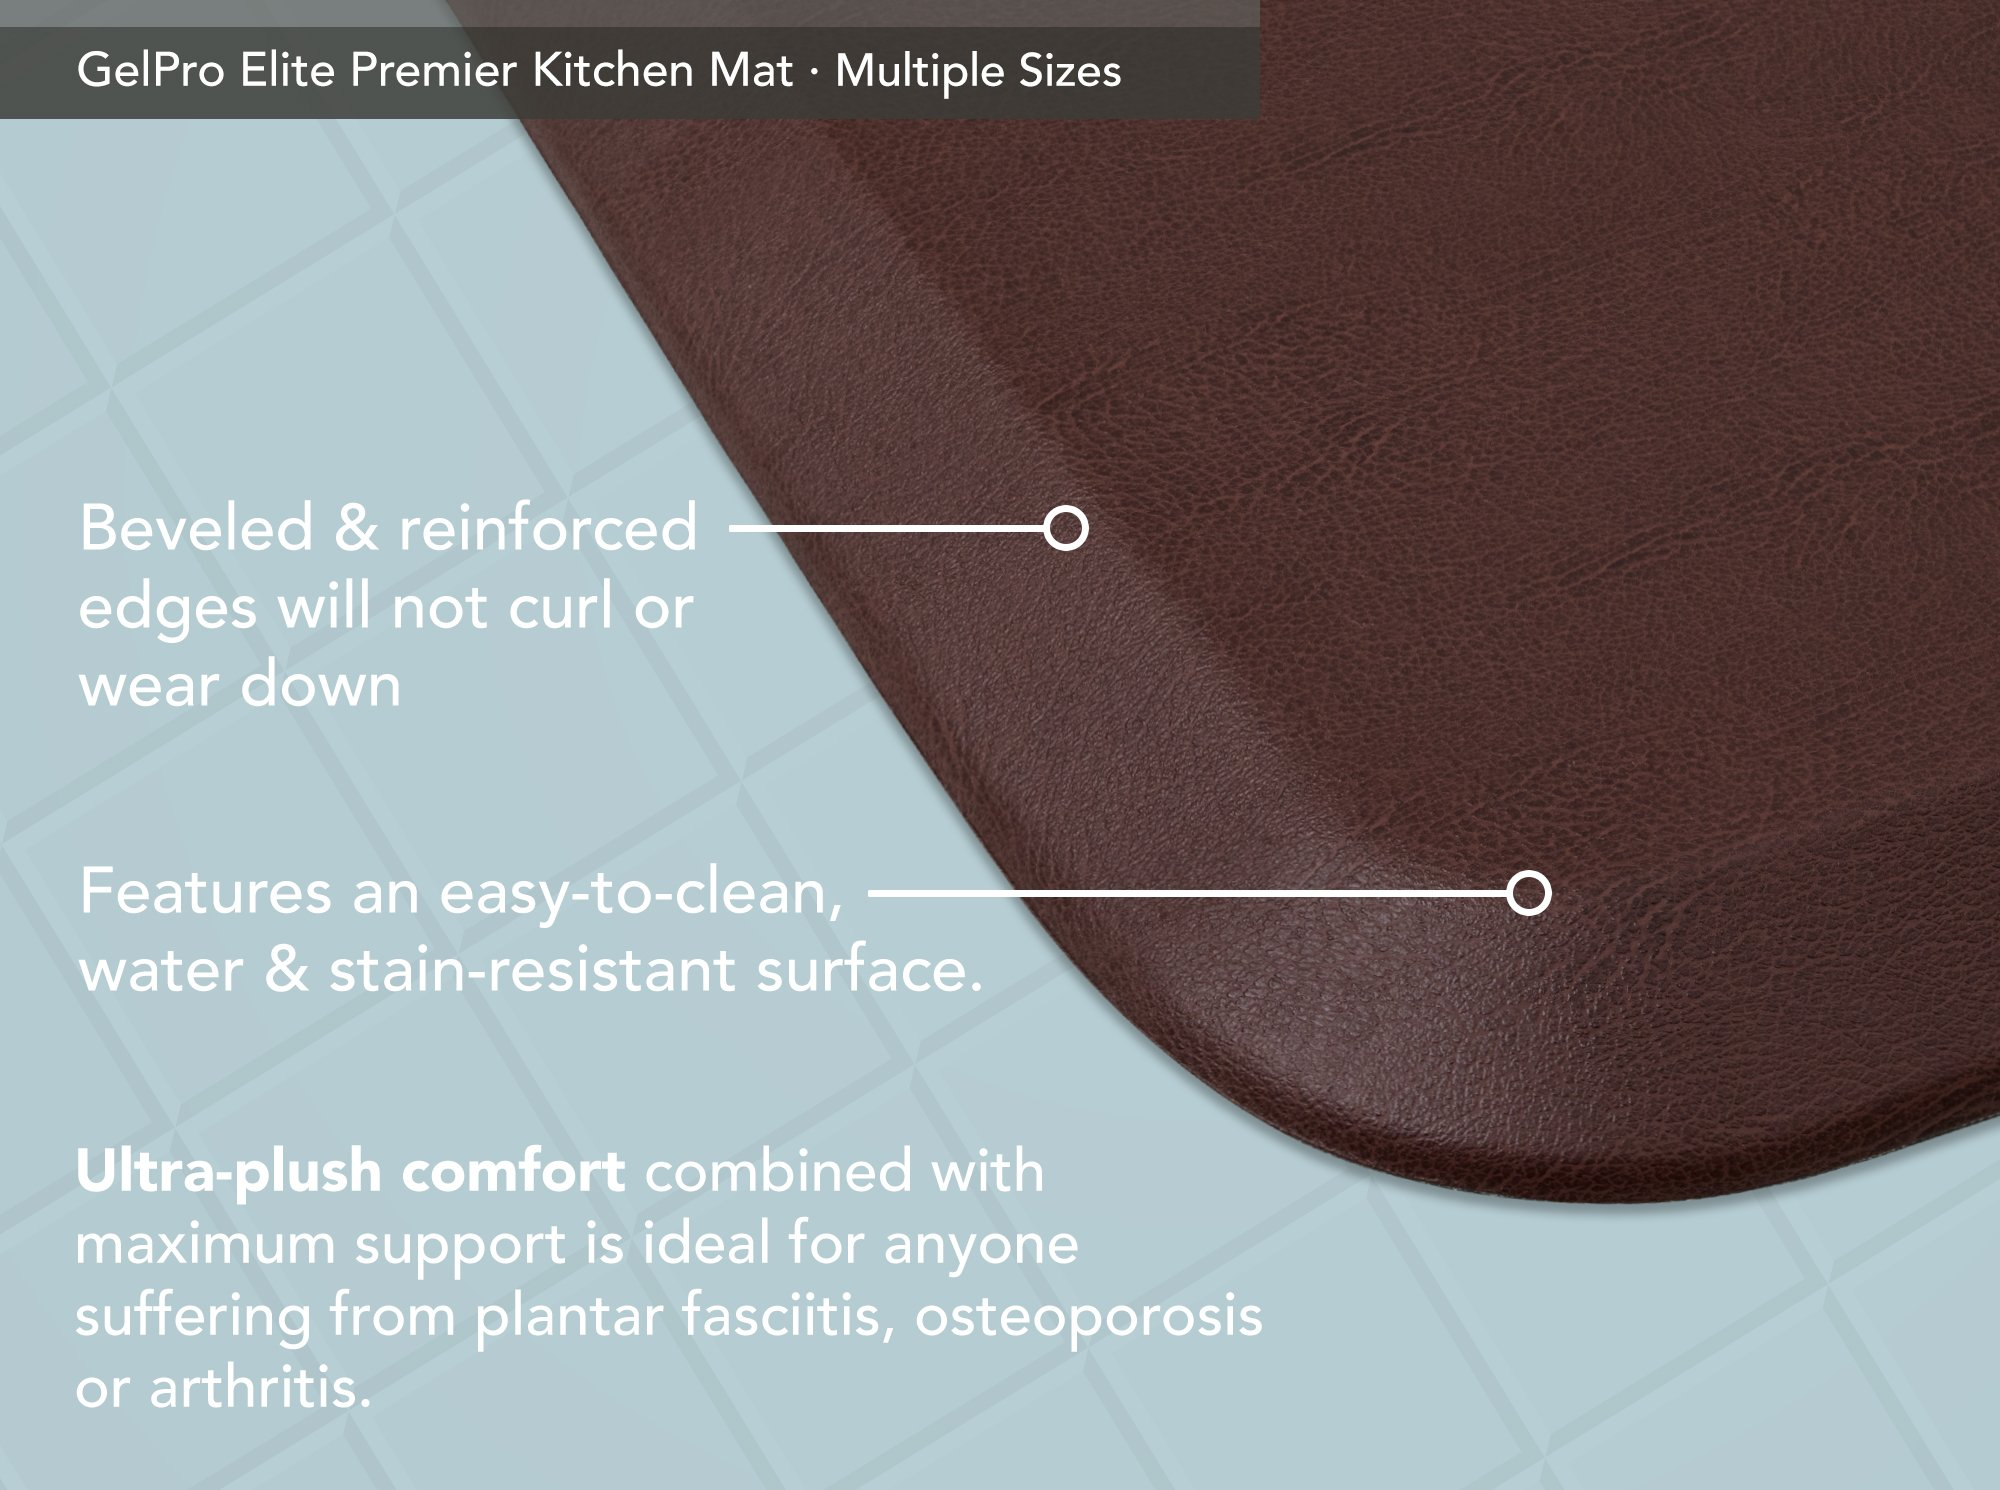 "GelPro Elite Premier Anti-Fatigue Kitchen Comfort Floor Mat, 20x36"", Vintage Leather Sherry Stain Resistant Surface with therapeutic gel and energy-return foam for health & wellness by GelPro (Image #4)"